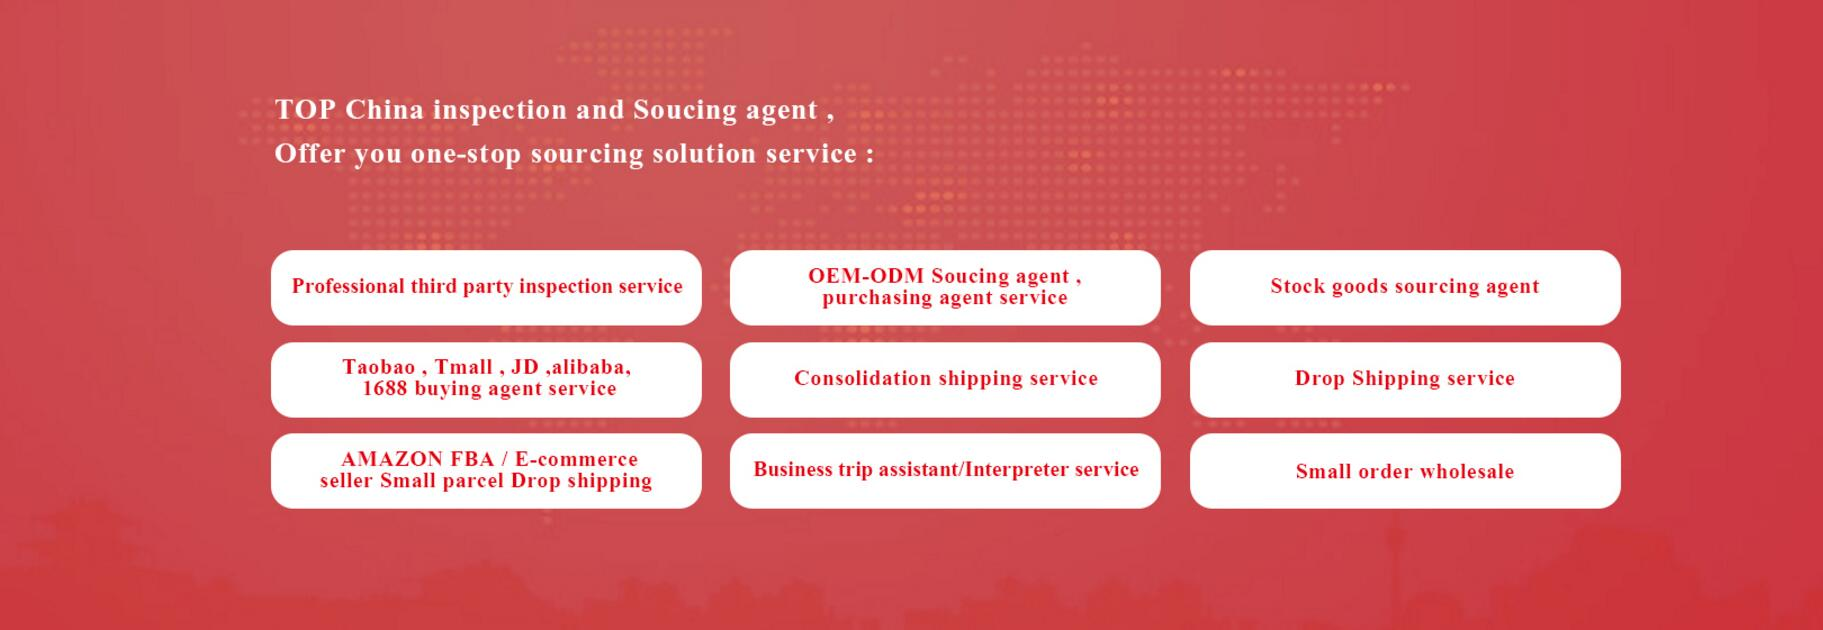 China Top Professional Stock Goods Buying Agent -purchasing Agent -drop  Shipping Service Agent -one Stop Sourcing Service - Buy Shenzhen Taobao  Tmall 1688 Jd Buying Agent,China Professional Purchasing Agent Shenzhen, China Taobao Tmall